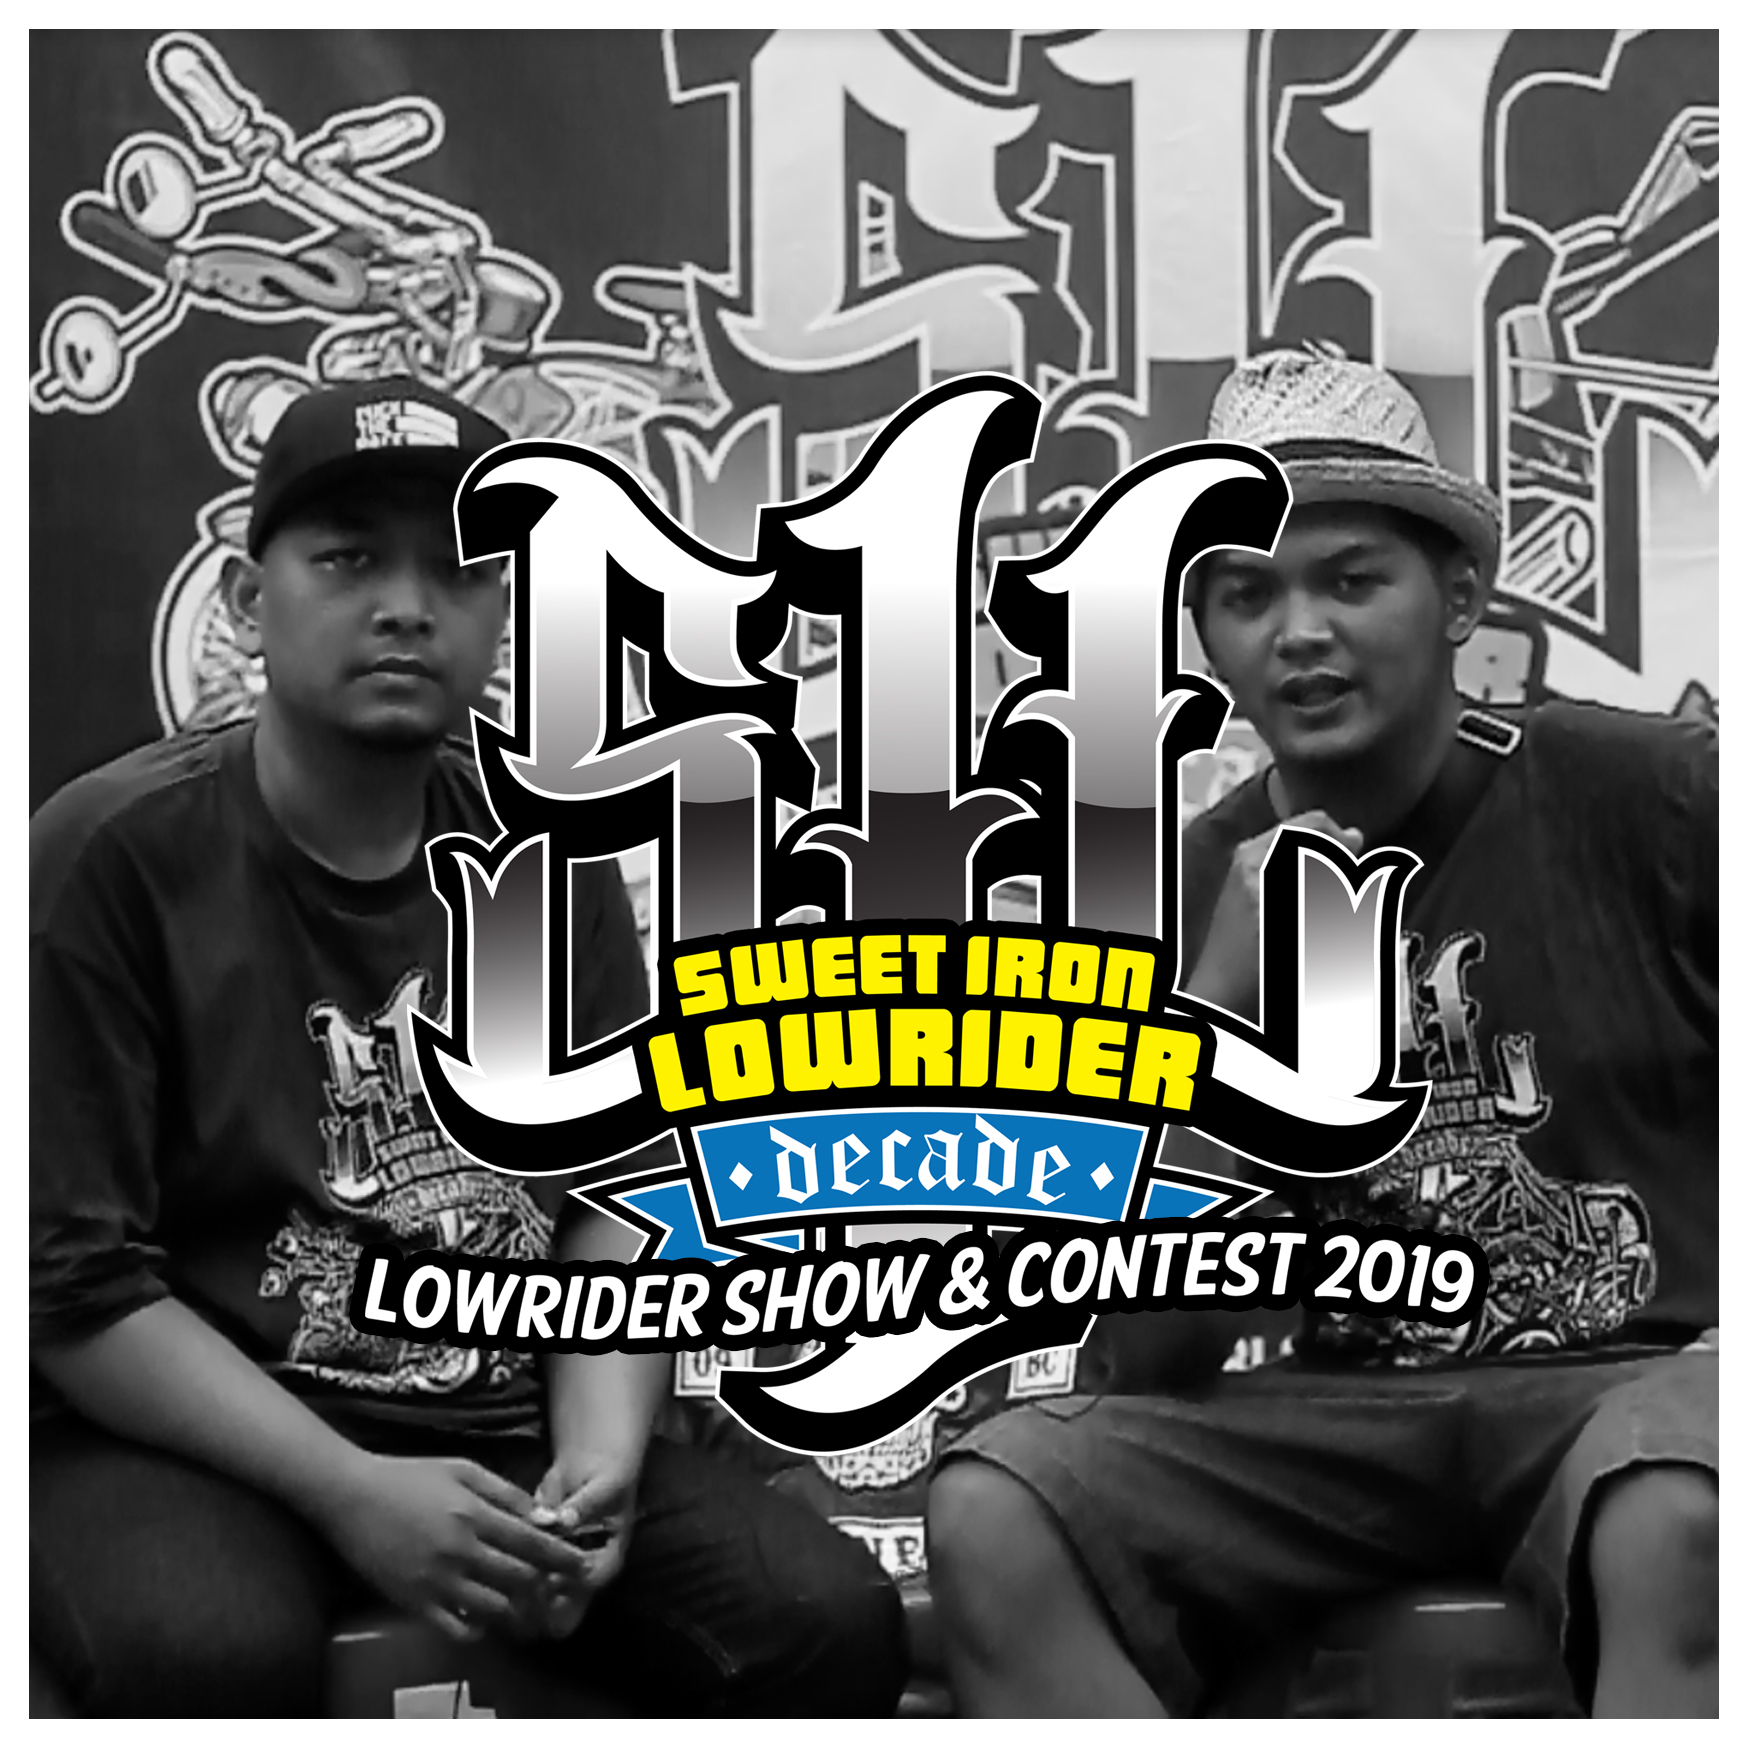 EVENT : CROSSOVERBDG GOES TO SWEET IRON LOWRIDER 1 DECADE image